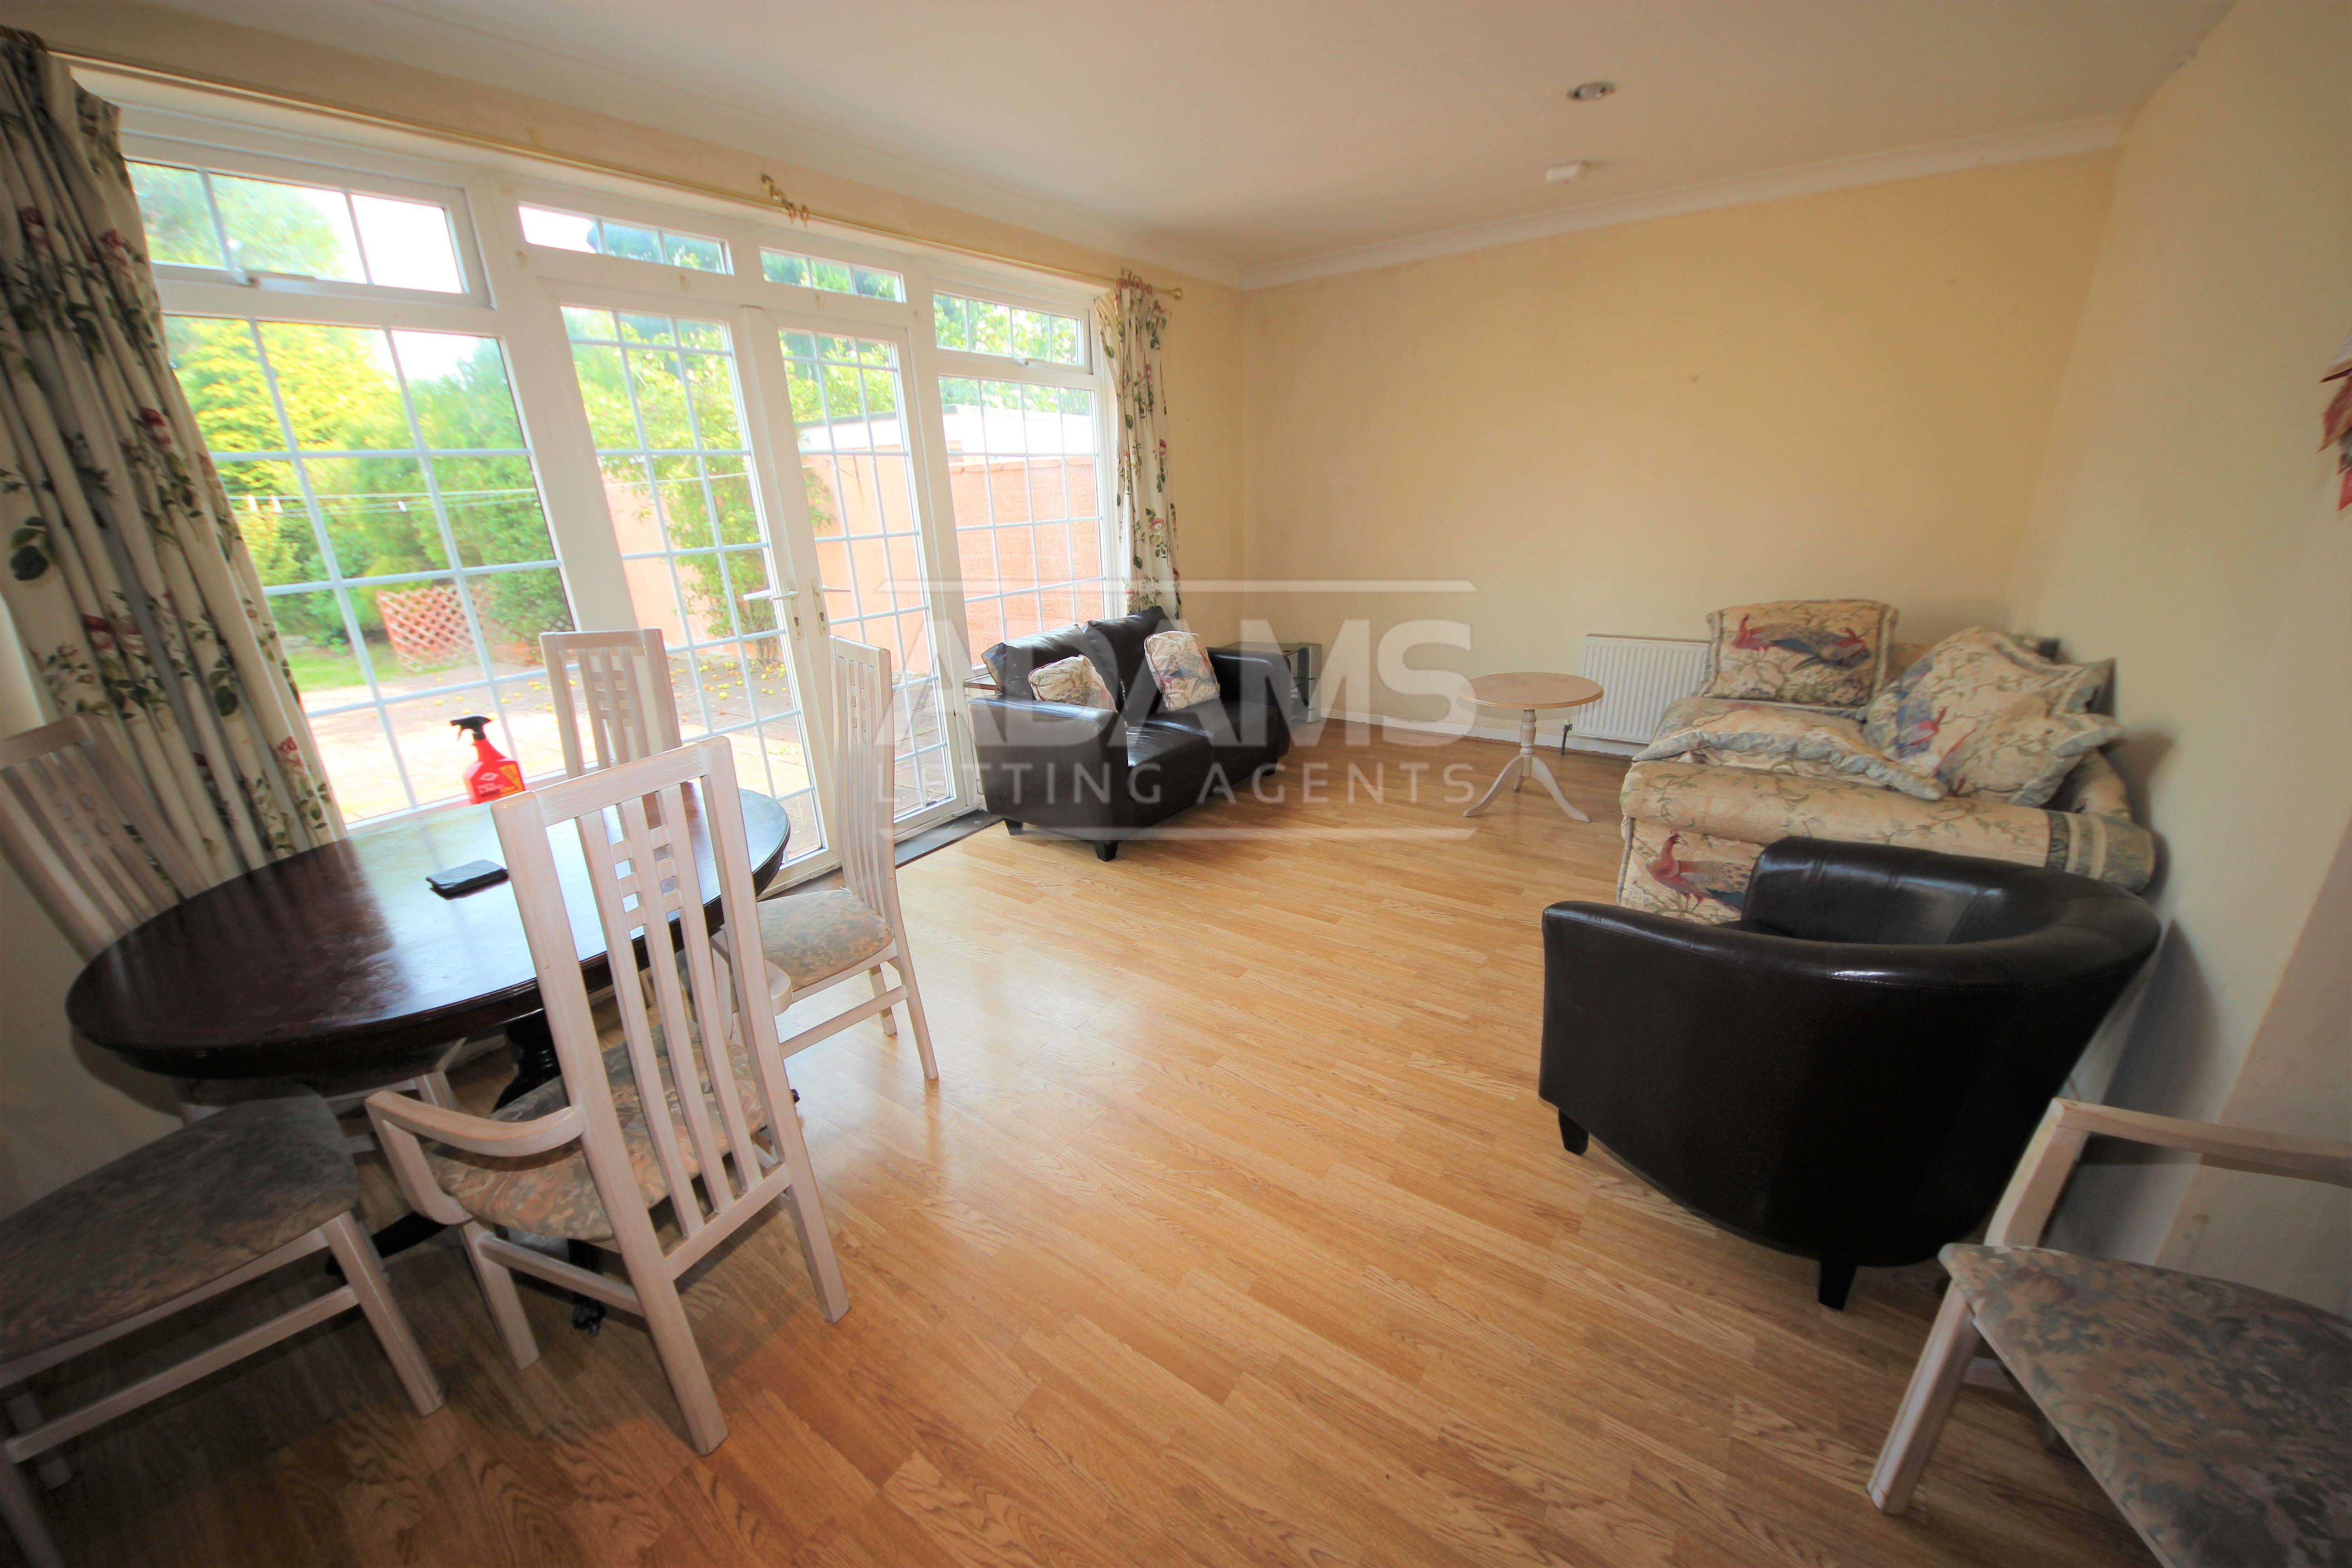 6 Bedroom Detached House To Rent Ensbury Park Road